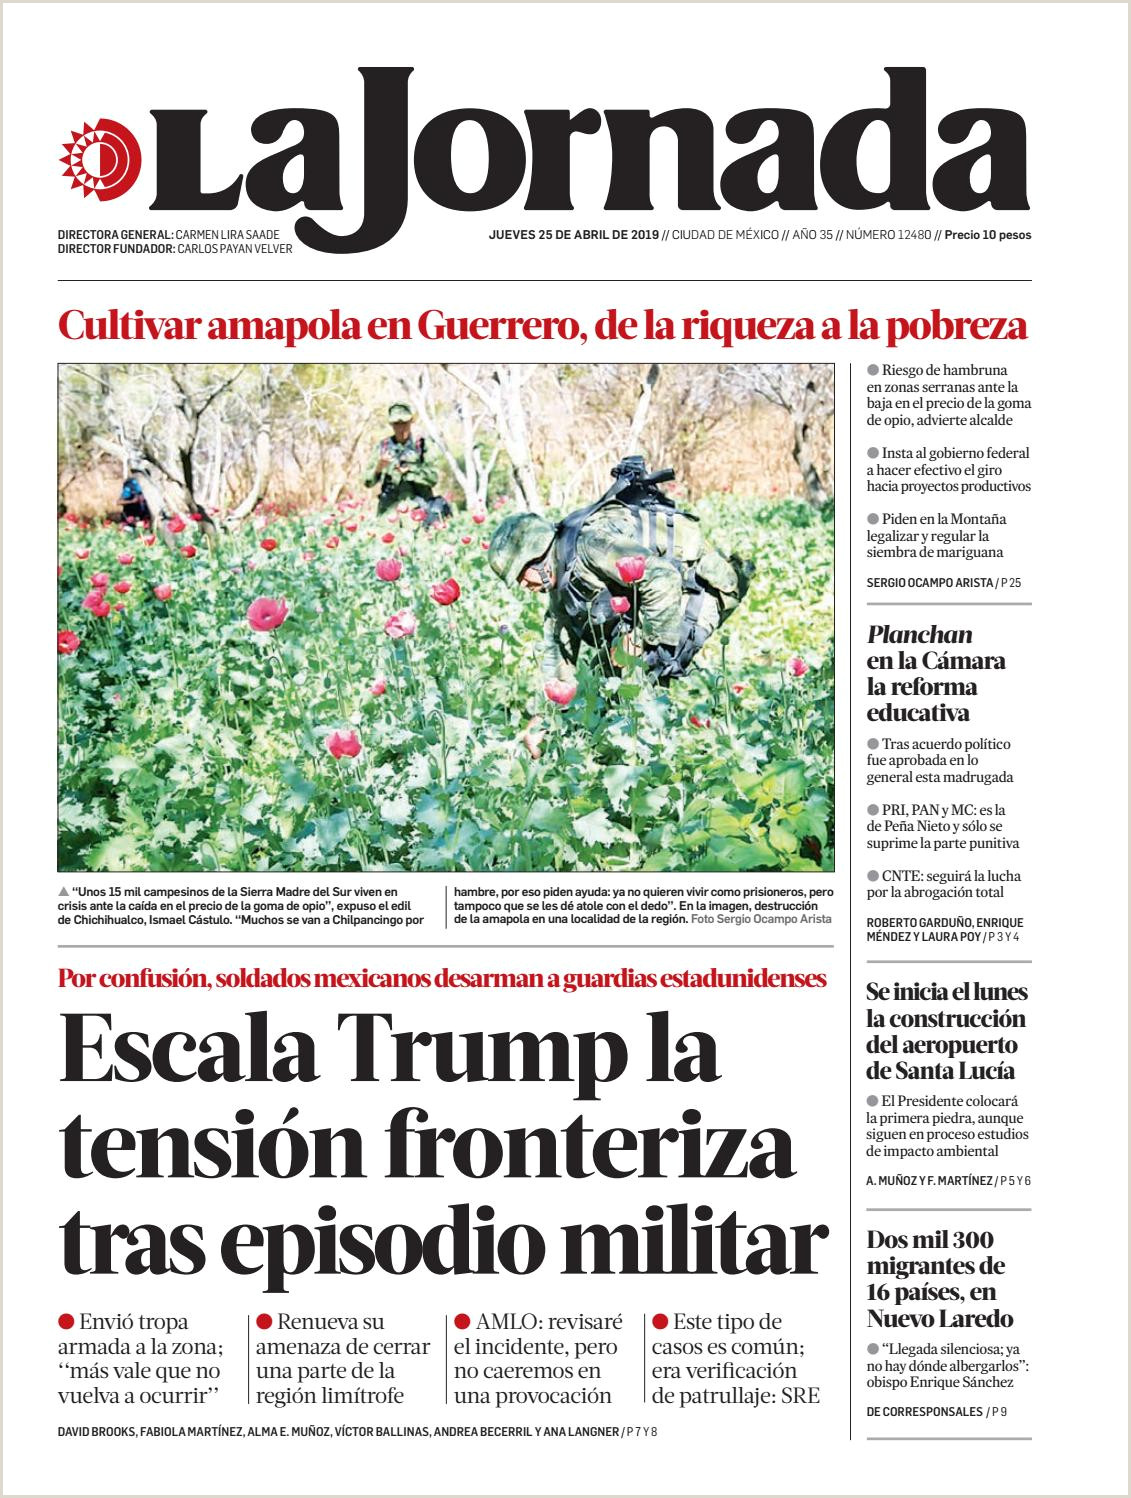 La Jornada 04 25 2019 by La Jornada issuu